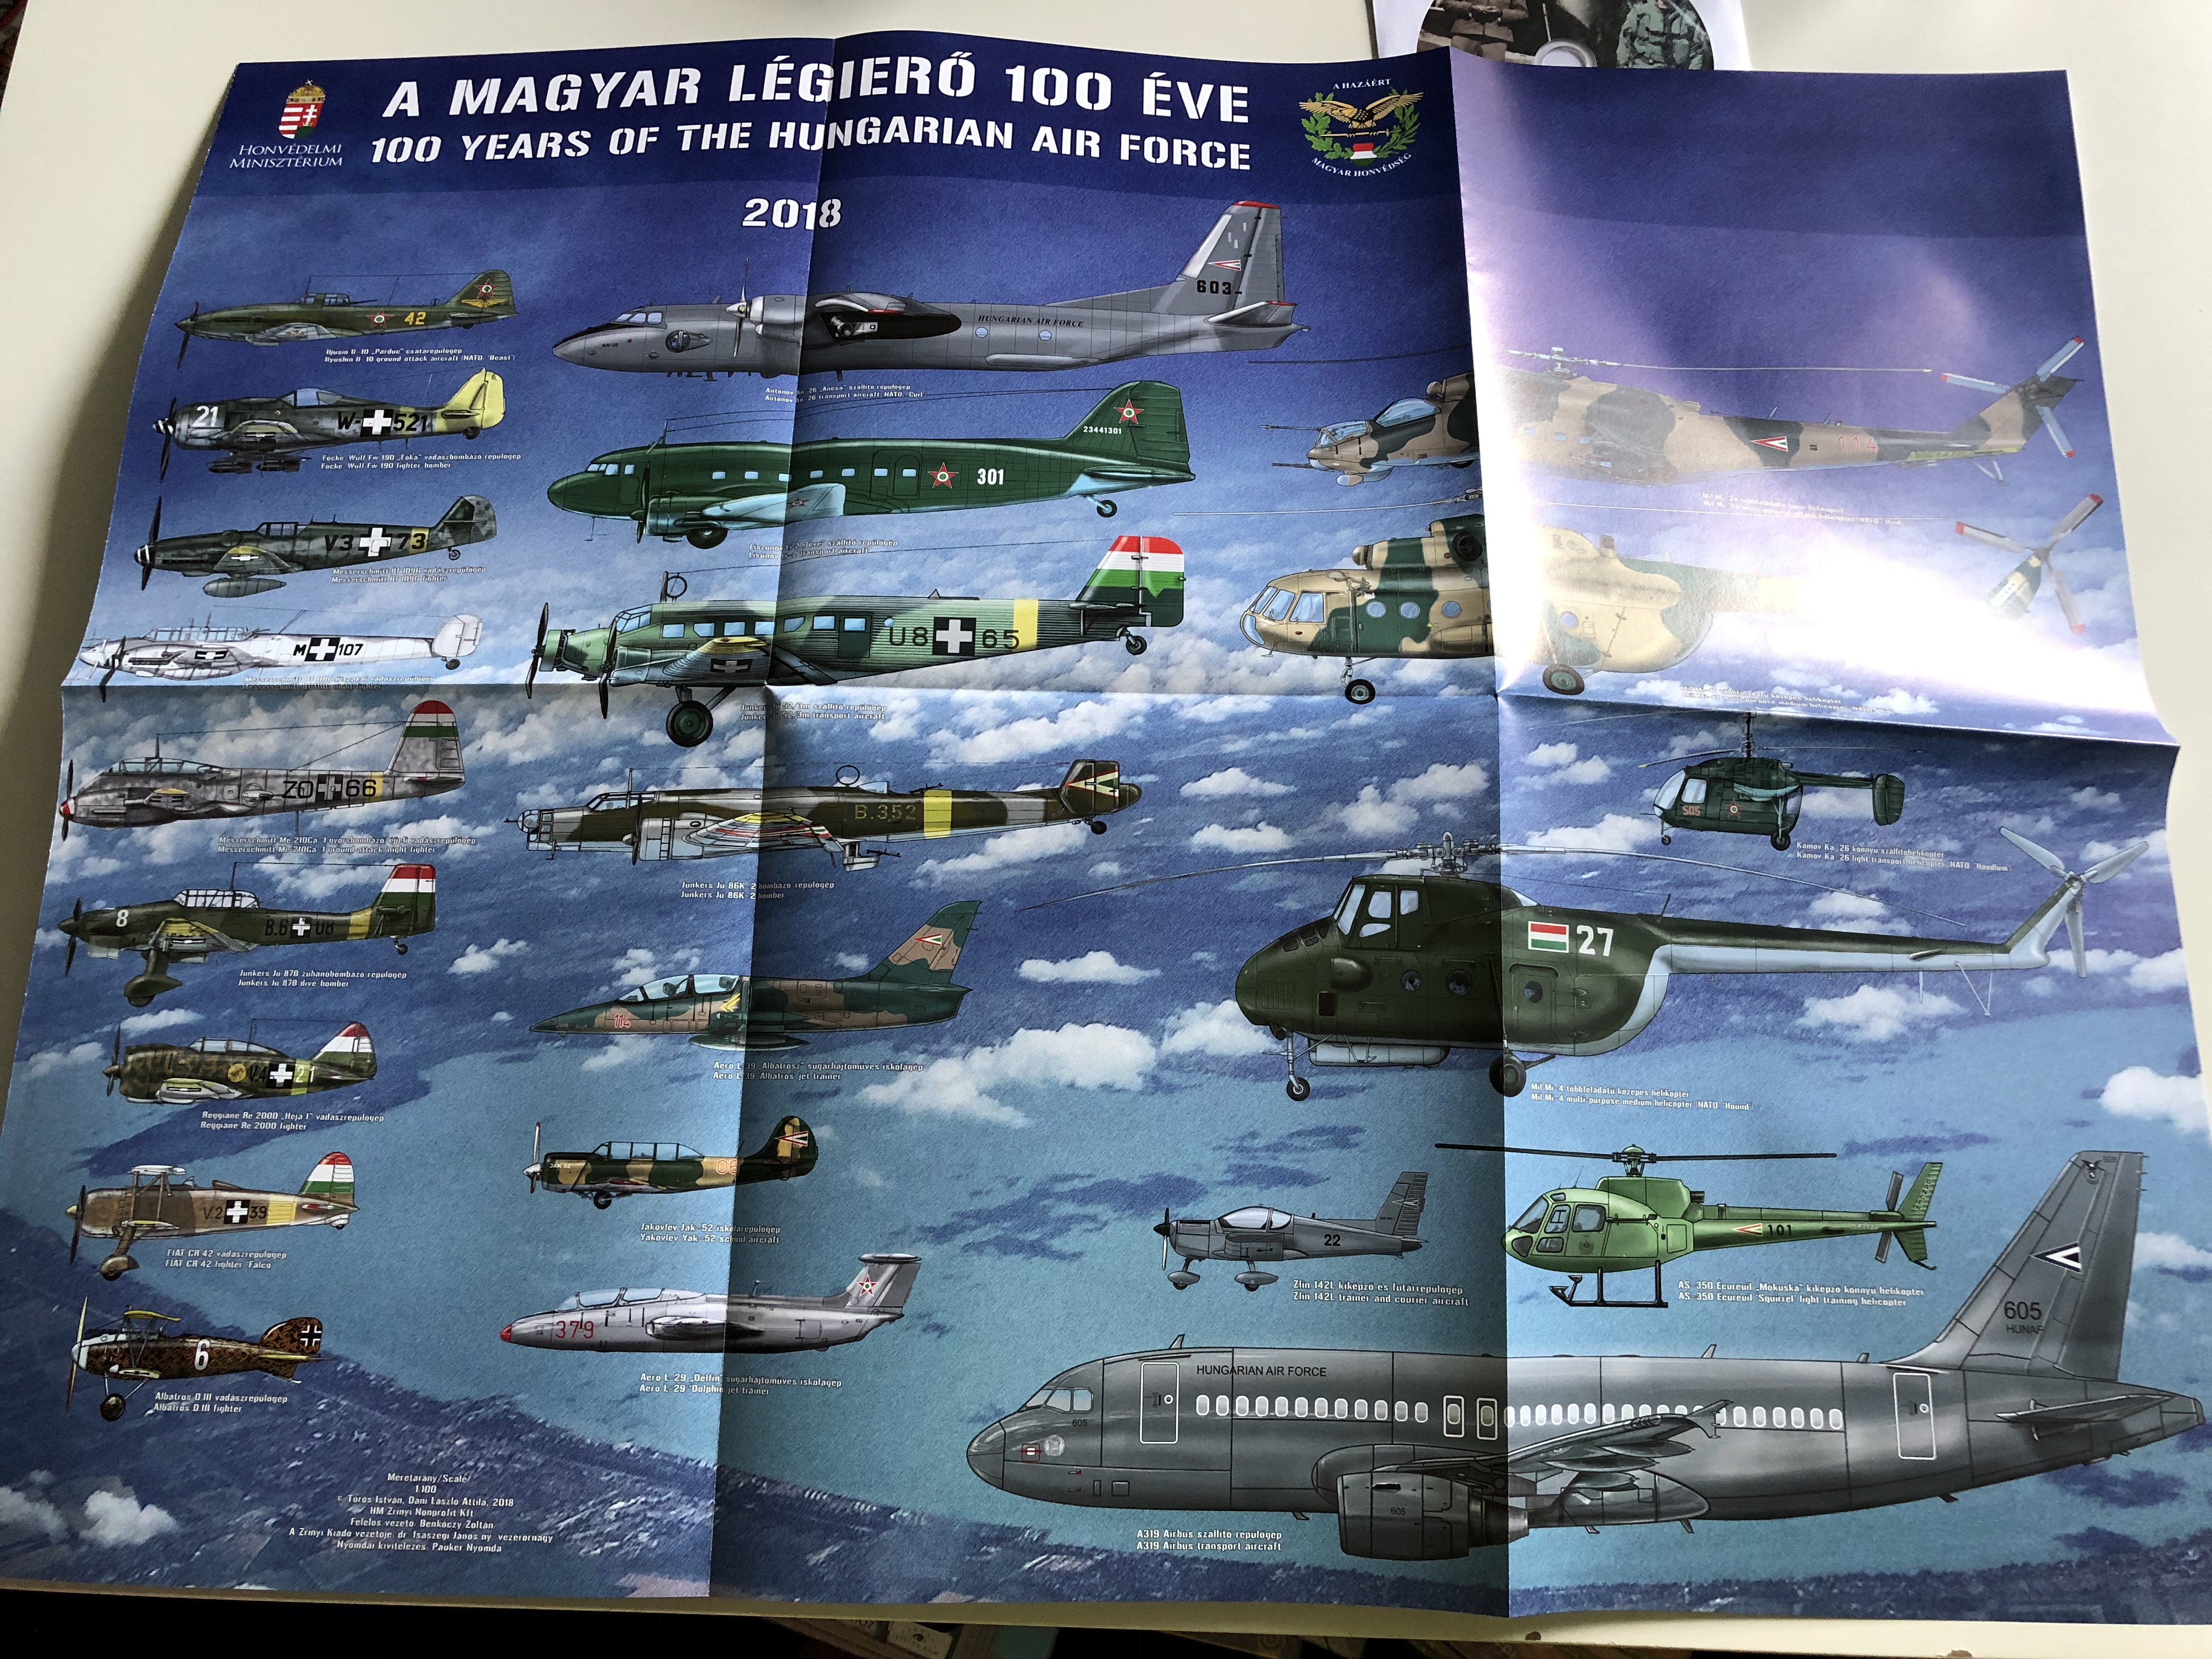 a-magyar-l-gier-100-ve-100-years-of-the-hungarian-air-force-with-film-music-and-poster-history-of-the-hungarian-airforce-hungarian-english-bilingual-album-zr-nyi-kiad-26-.jpg